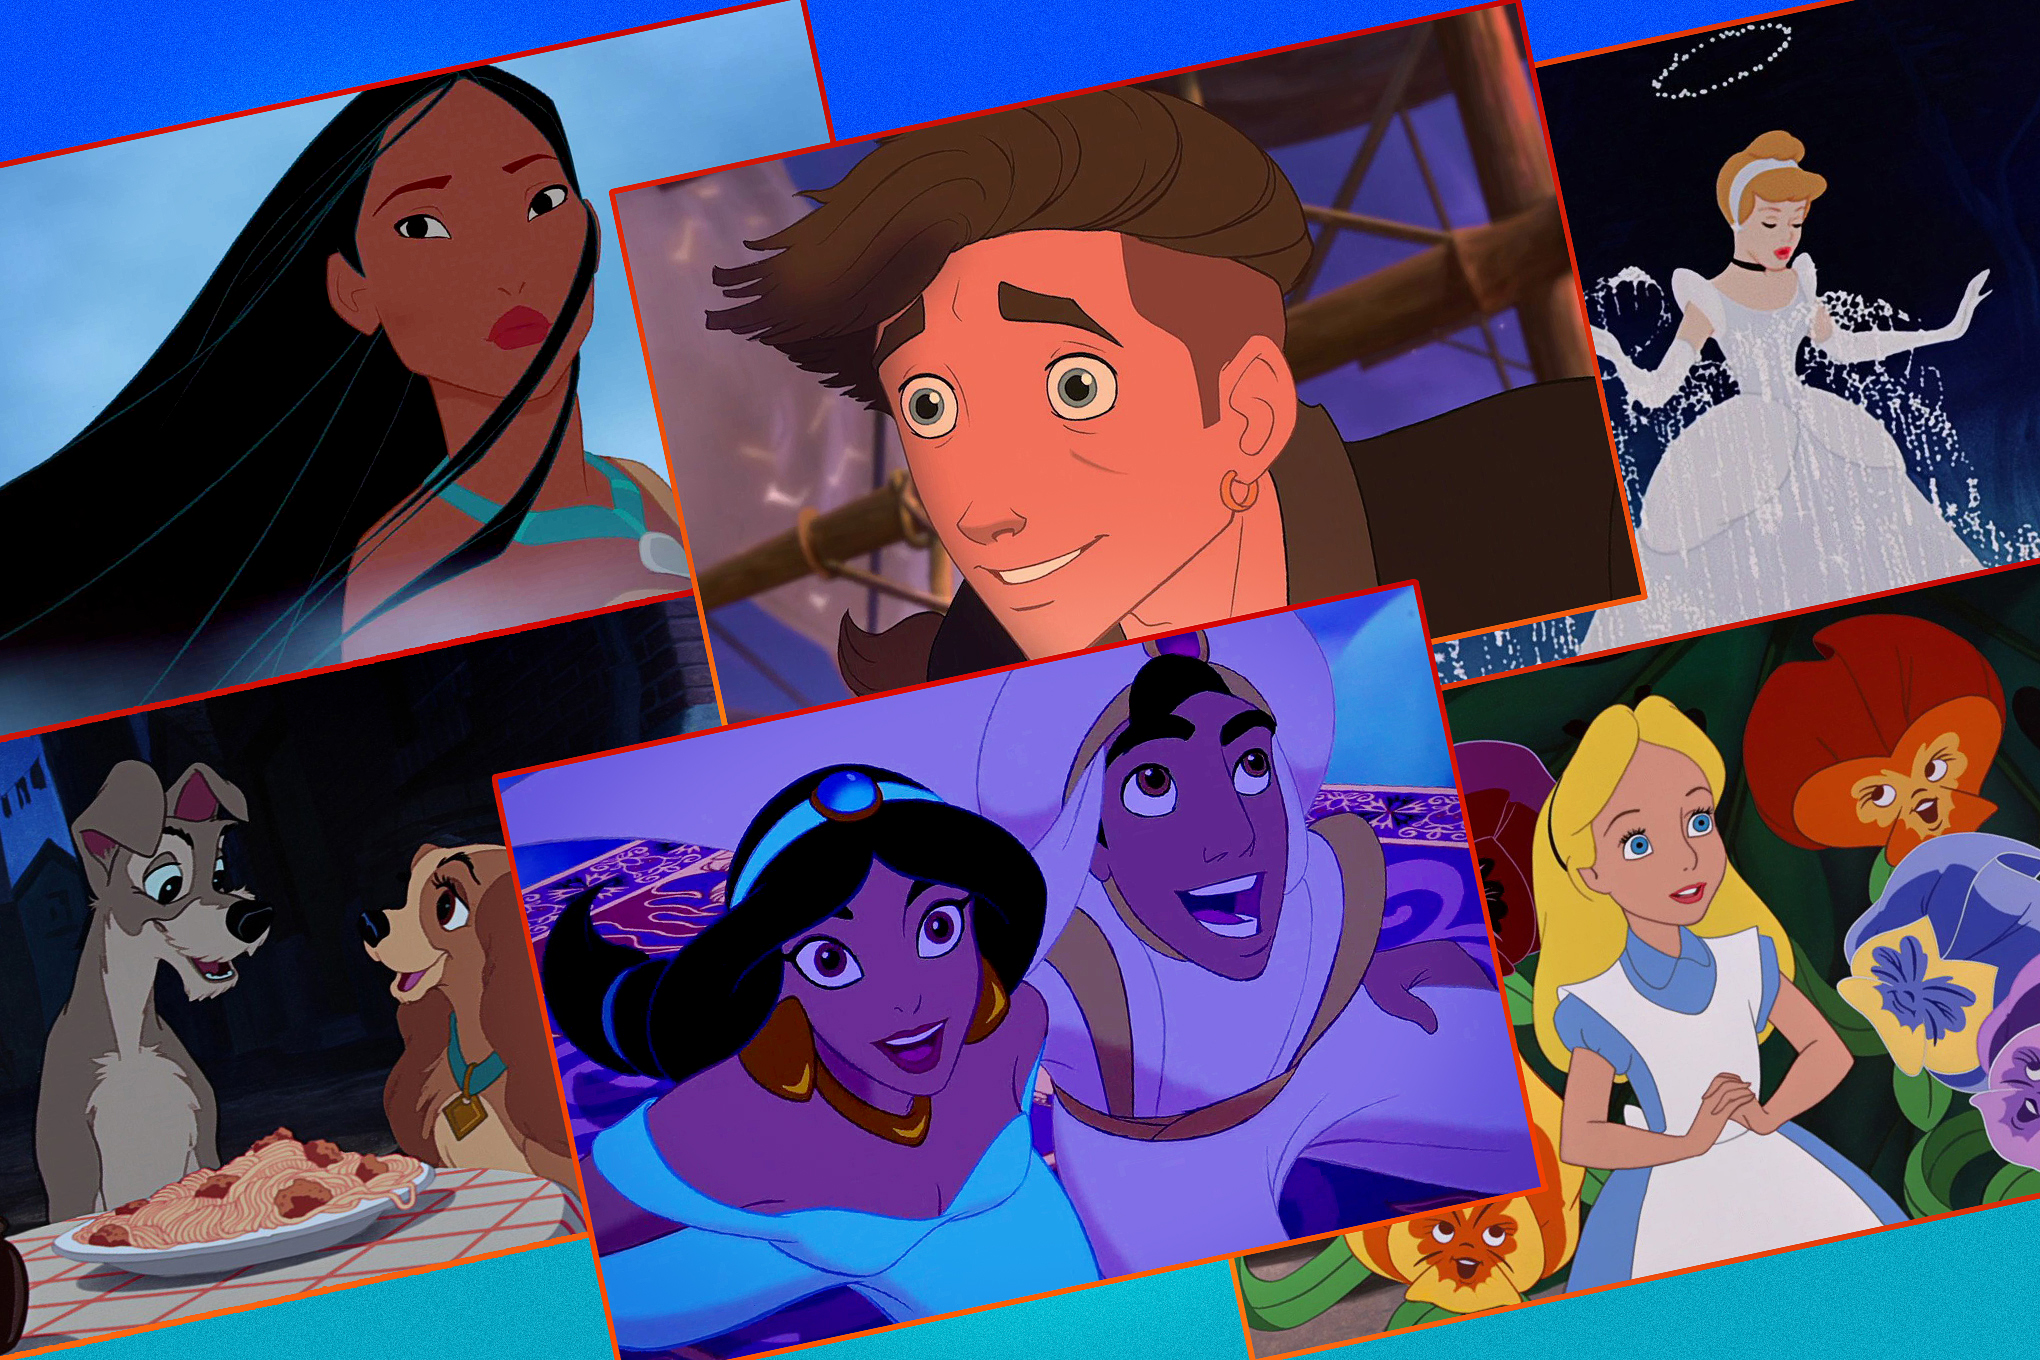 What the Disney movie of your birth year says about you